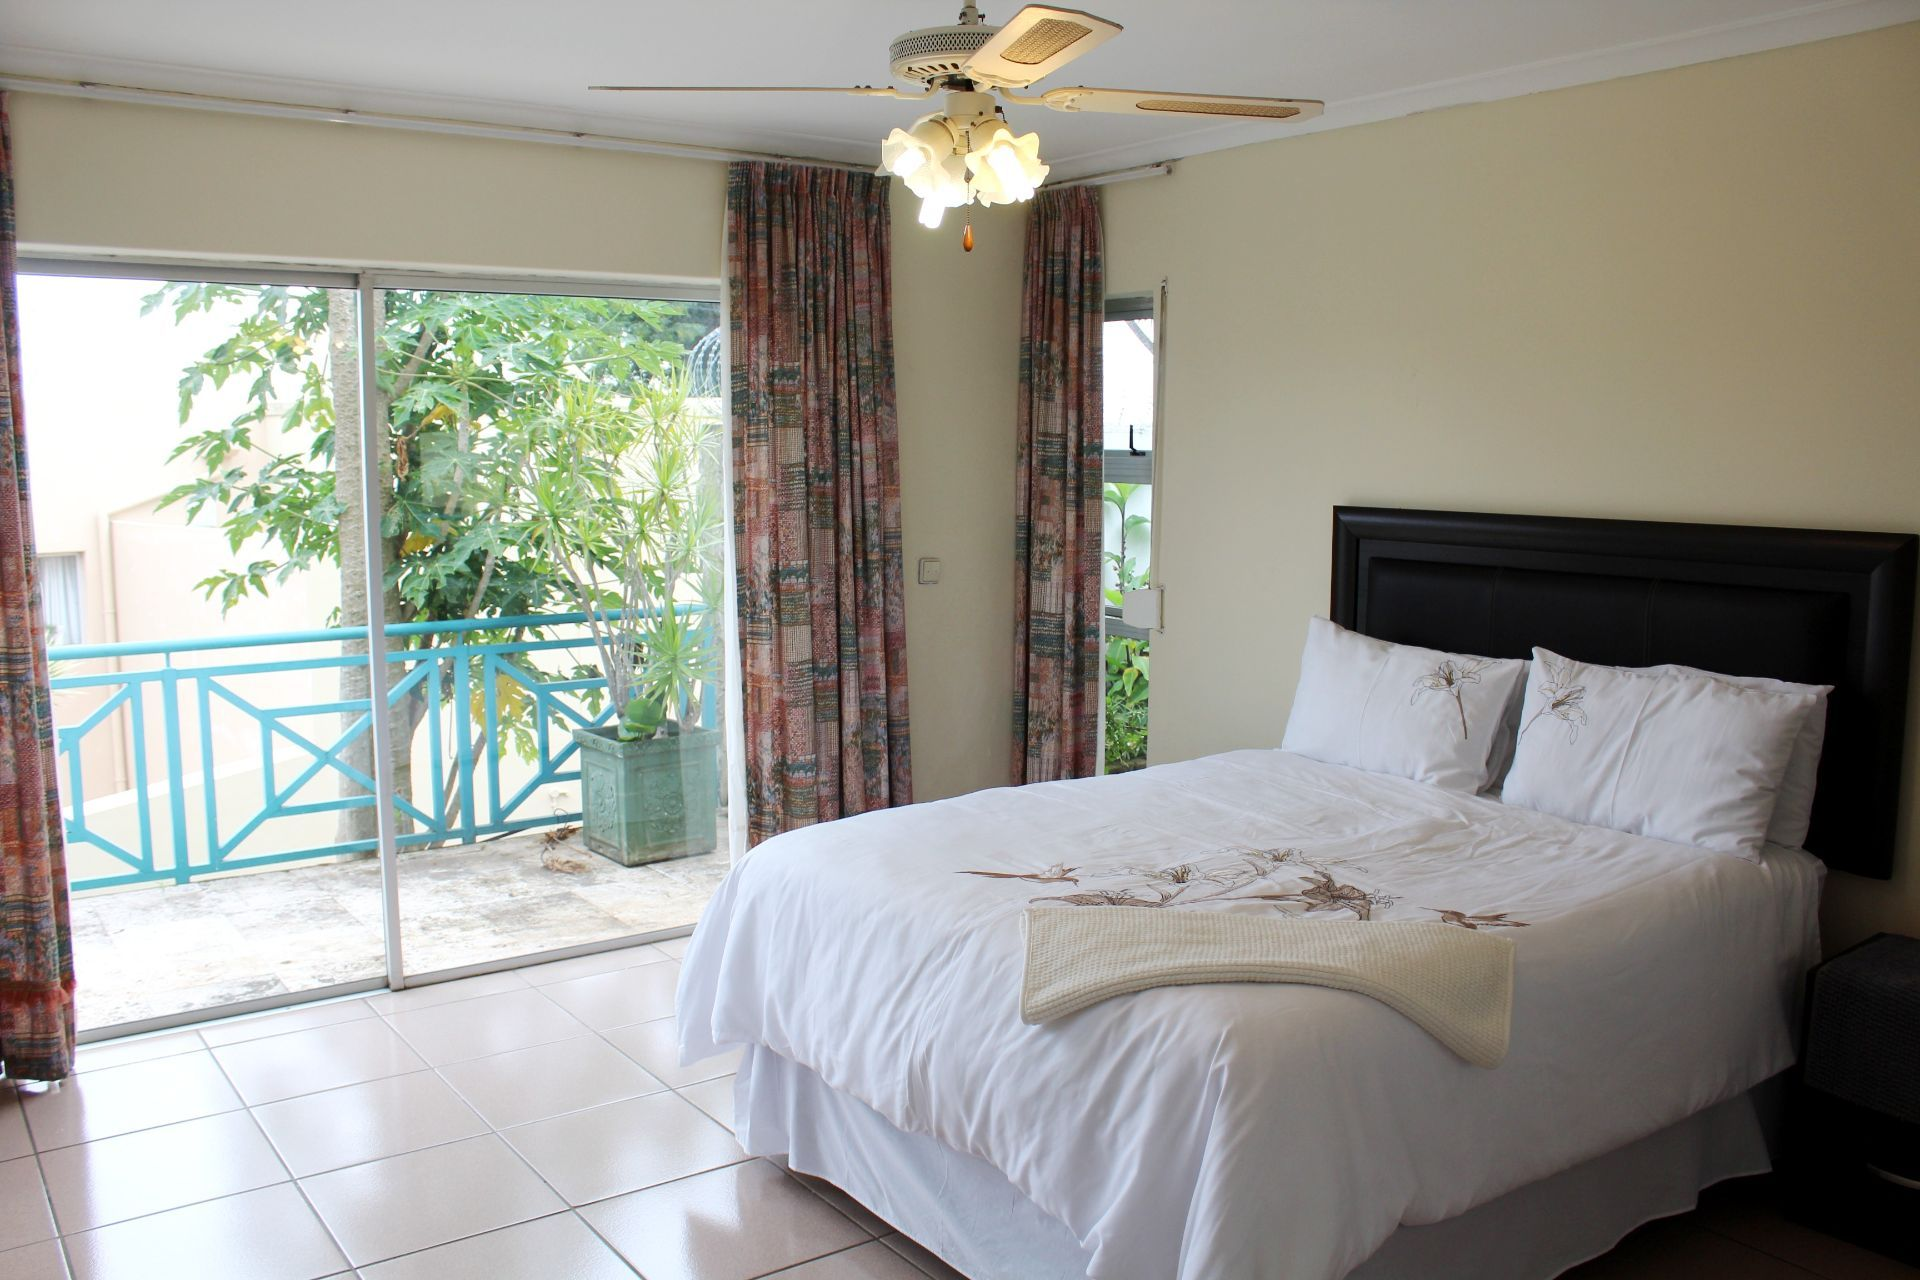 Vincent Heights property for sale. Ref No: 13459972. Picture no 25